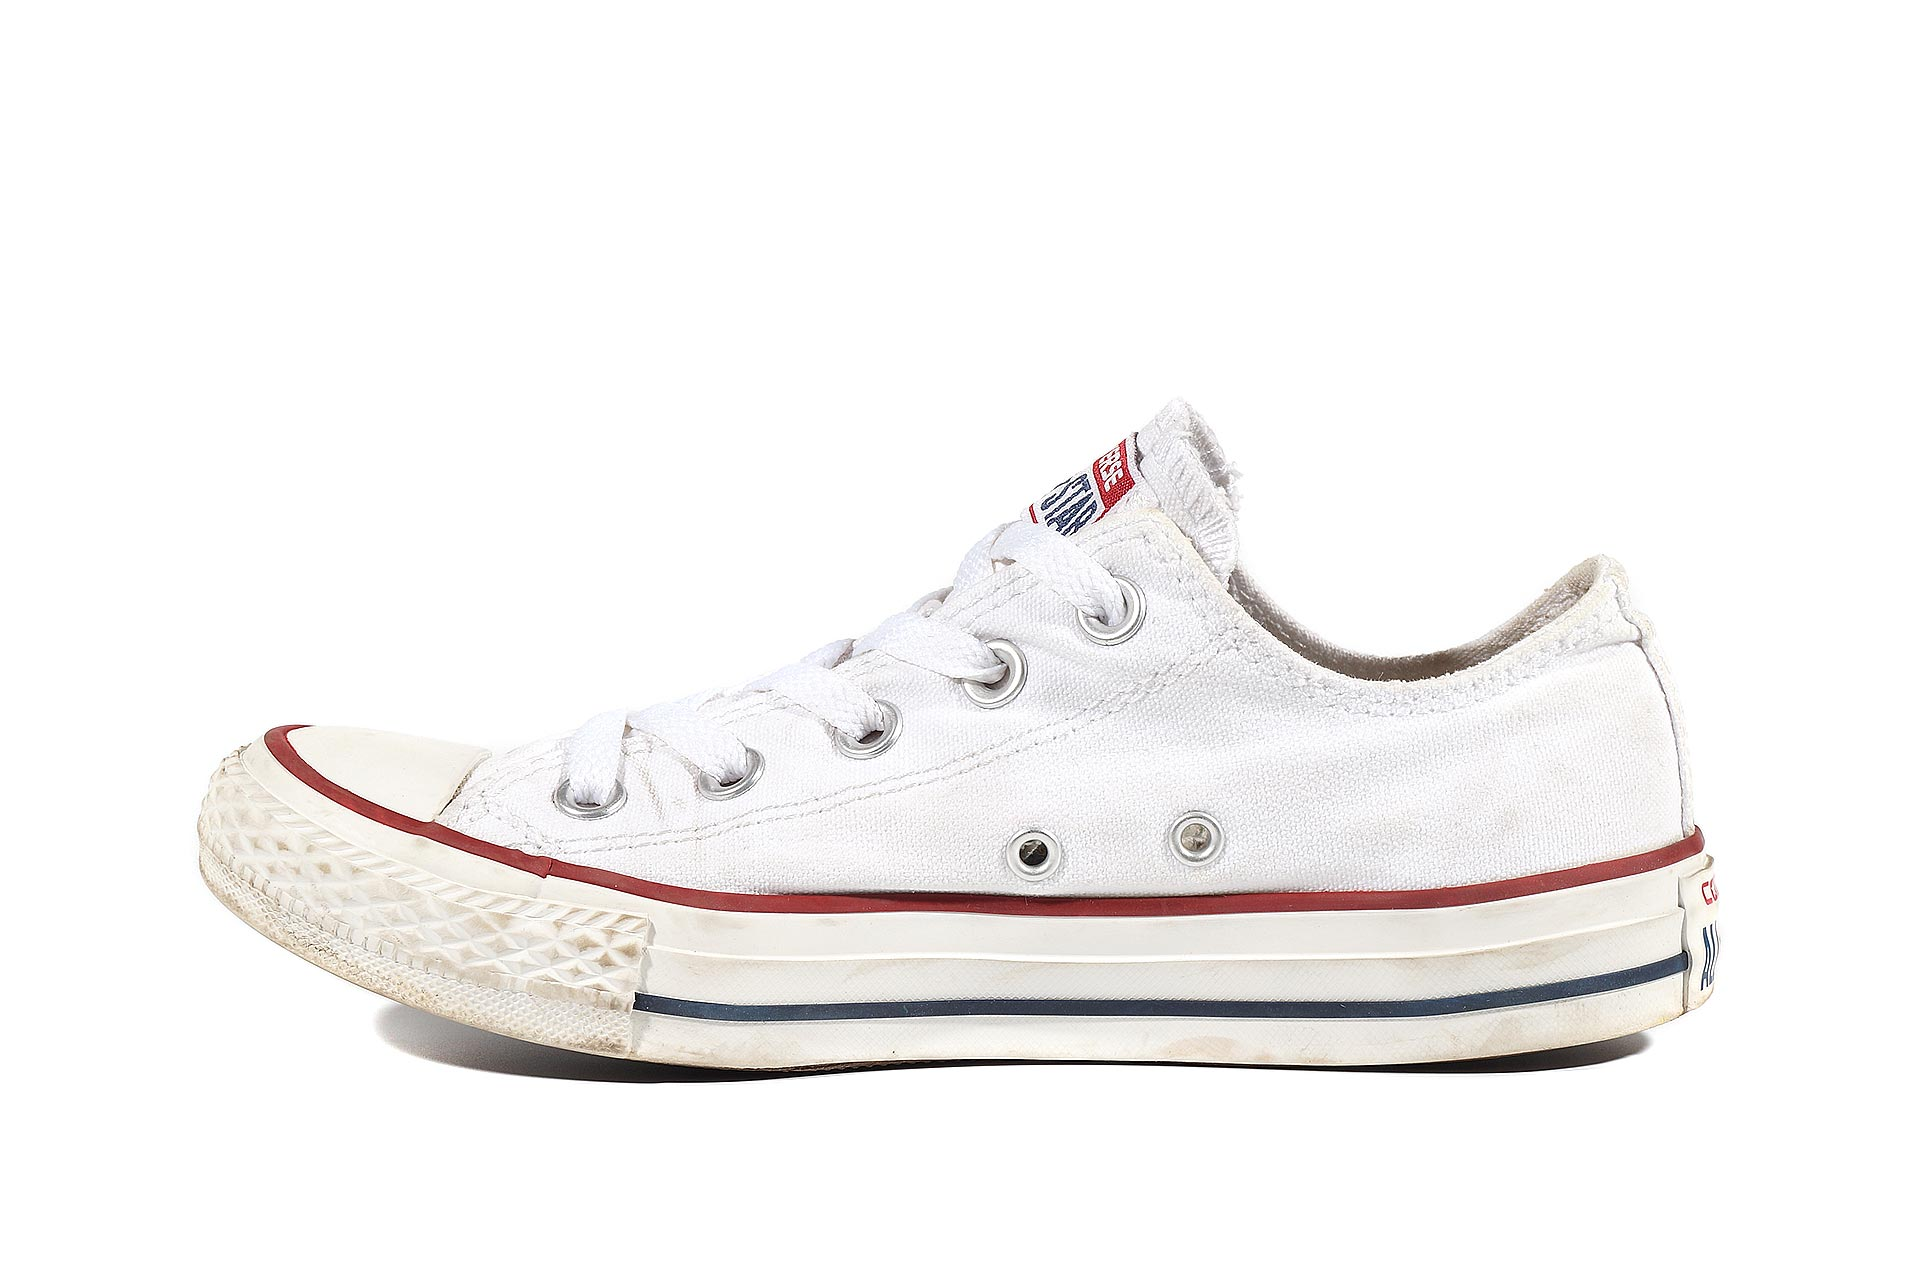 cacd1696adc Converse Chuck Taylor All Star M7652 (00049-U) sneakers used buy online  shop vintageshoes.ru